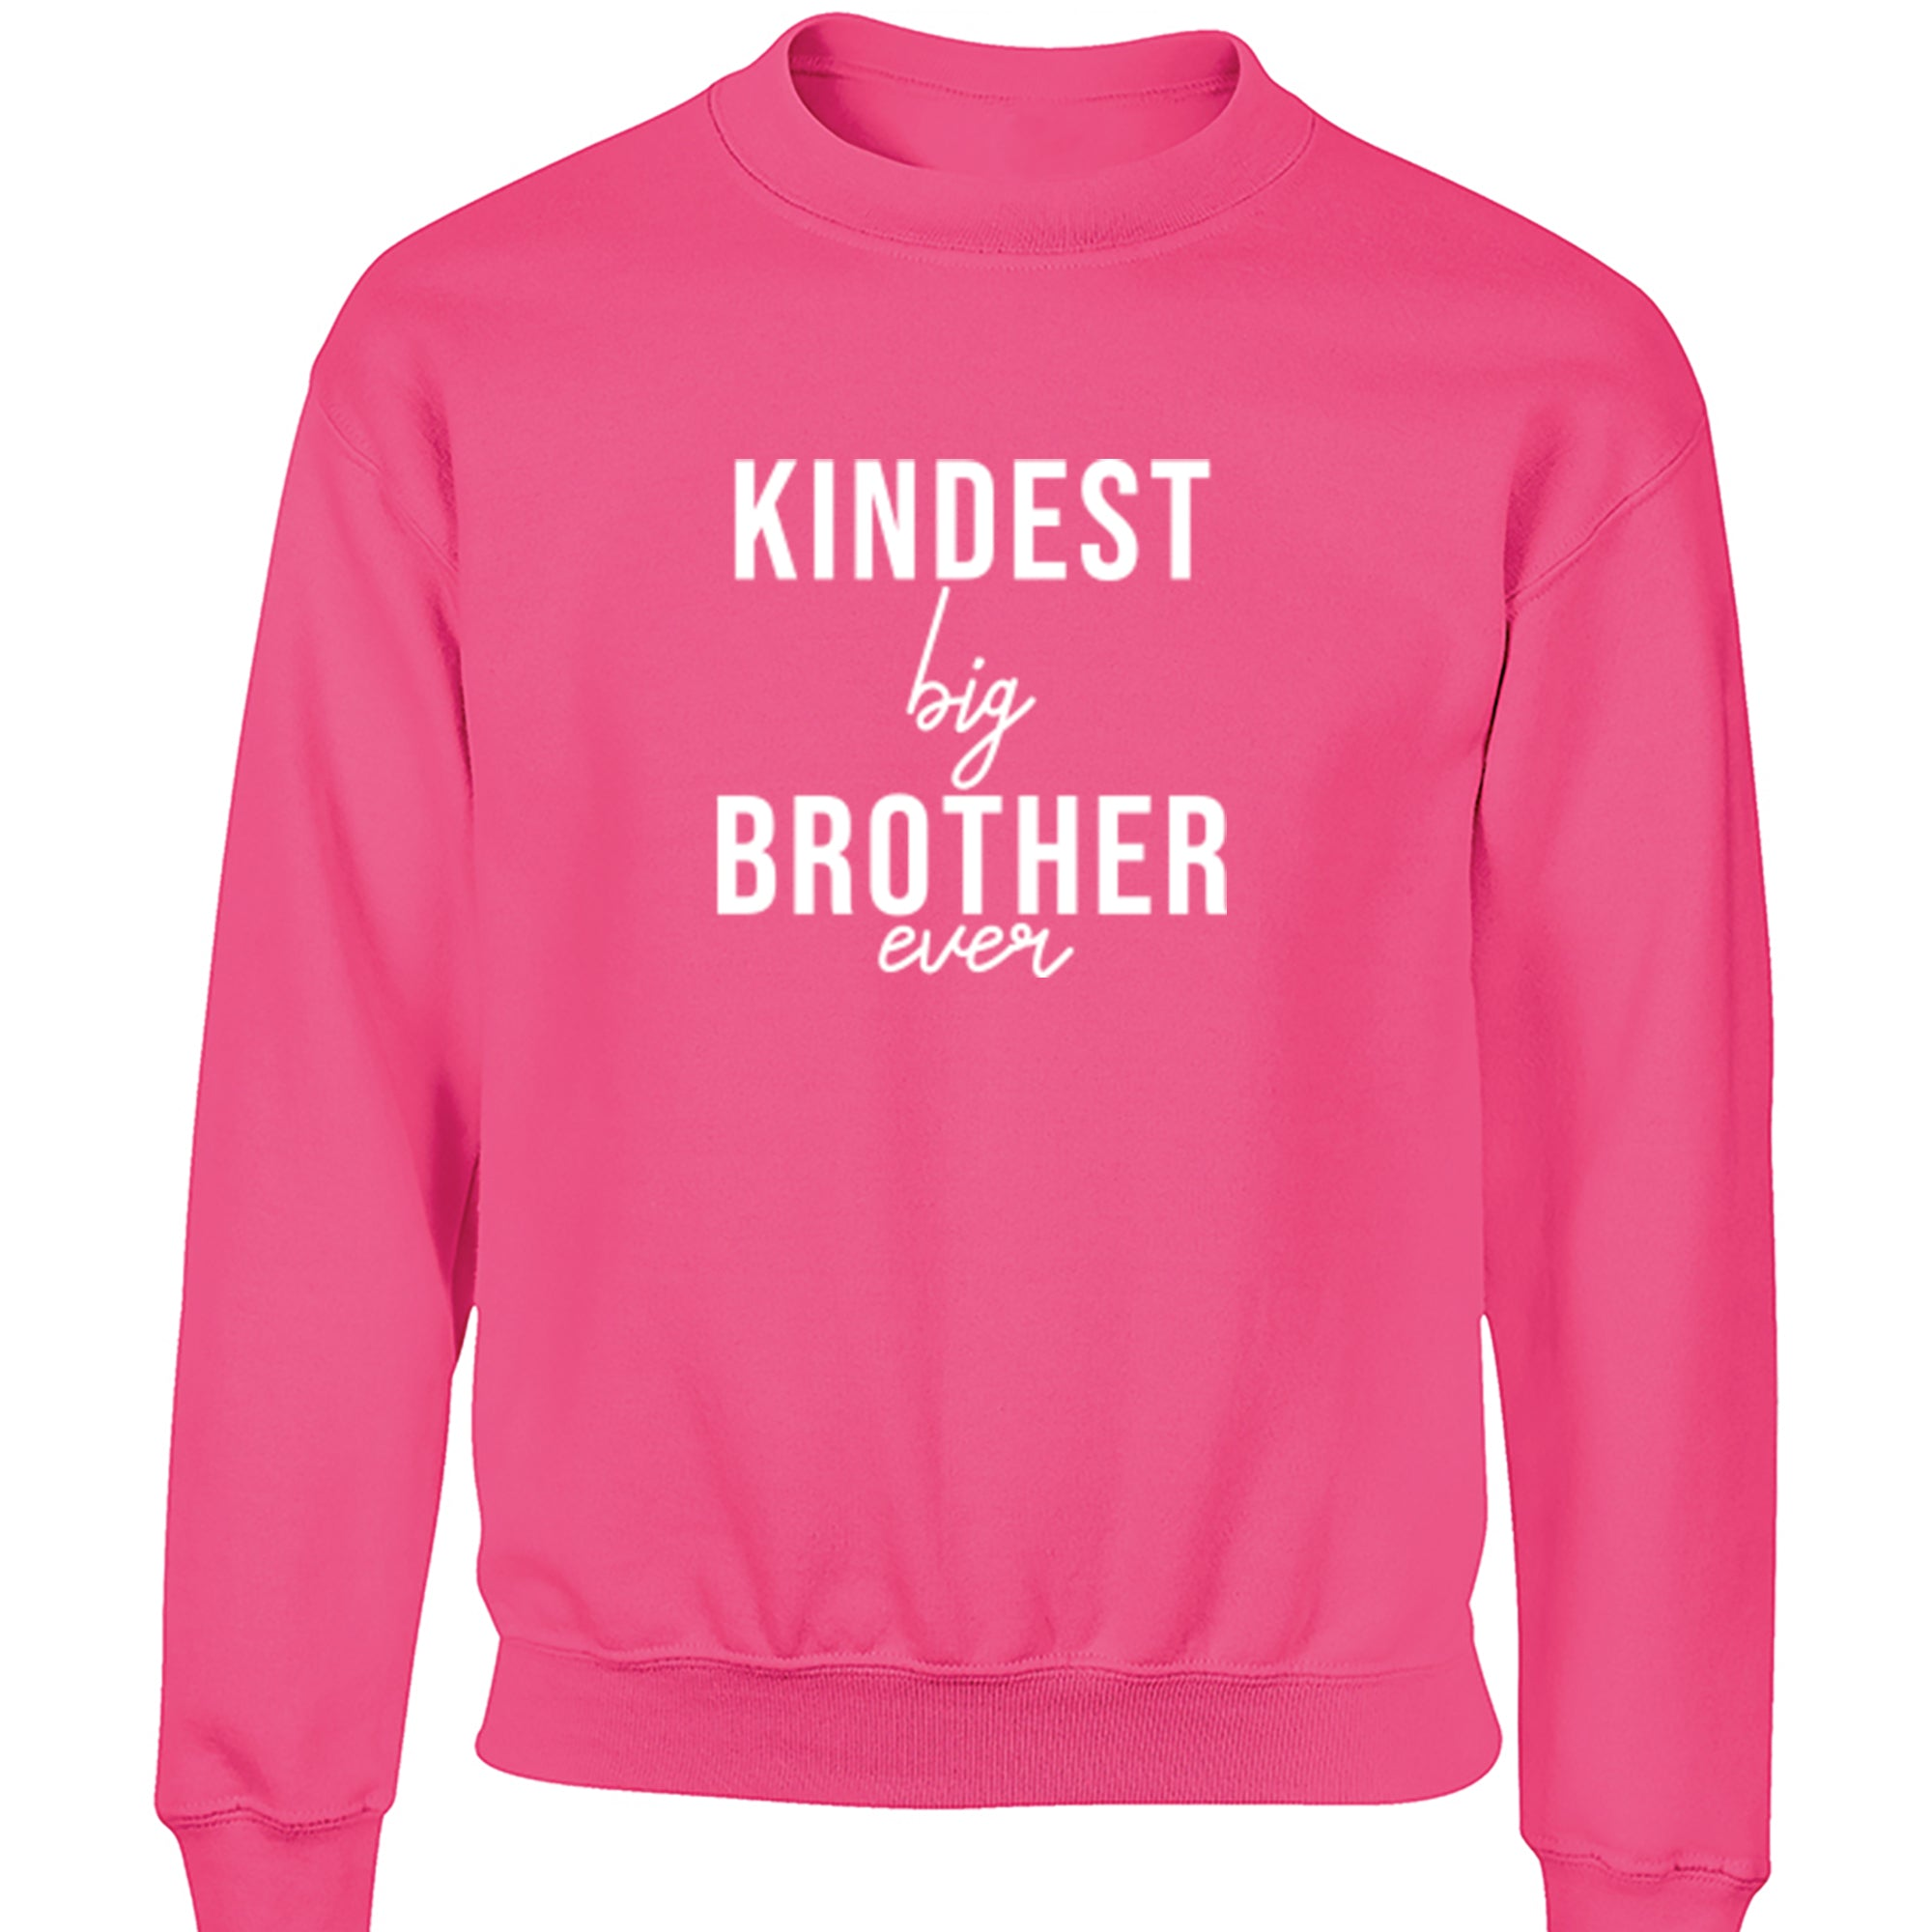 Kindest Big Brother Ever Childrens Ages 3/4-12/14 Unisex Jumper S0525 - Illustrated Identity Ltd.